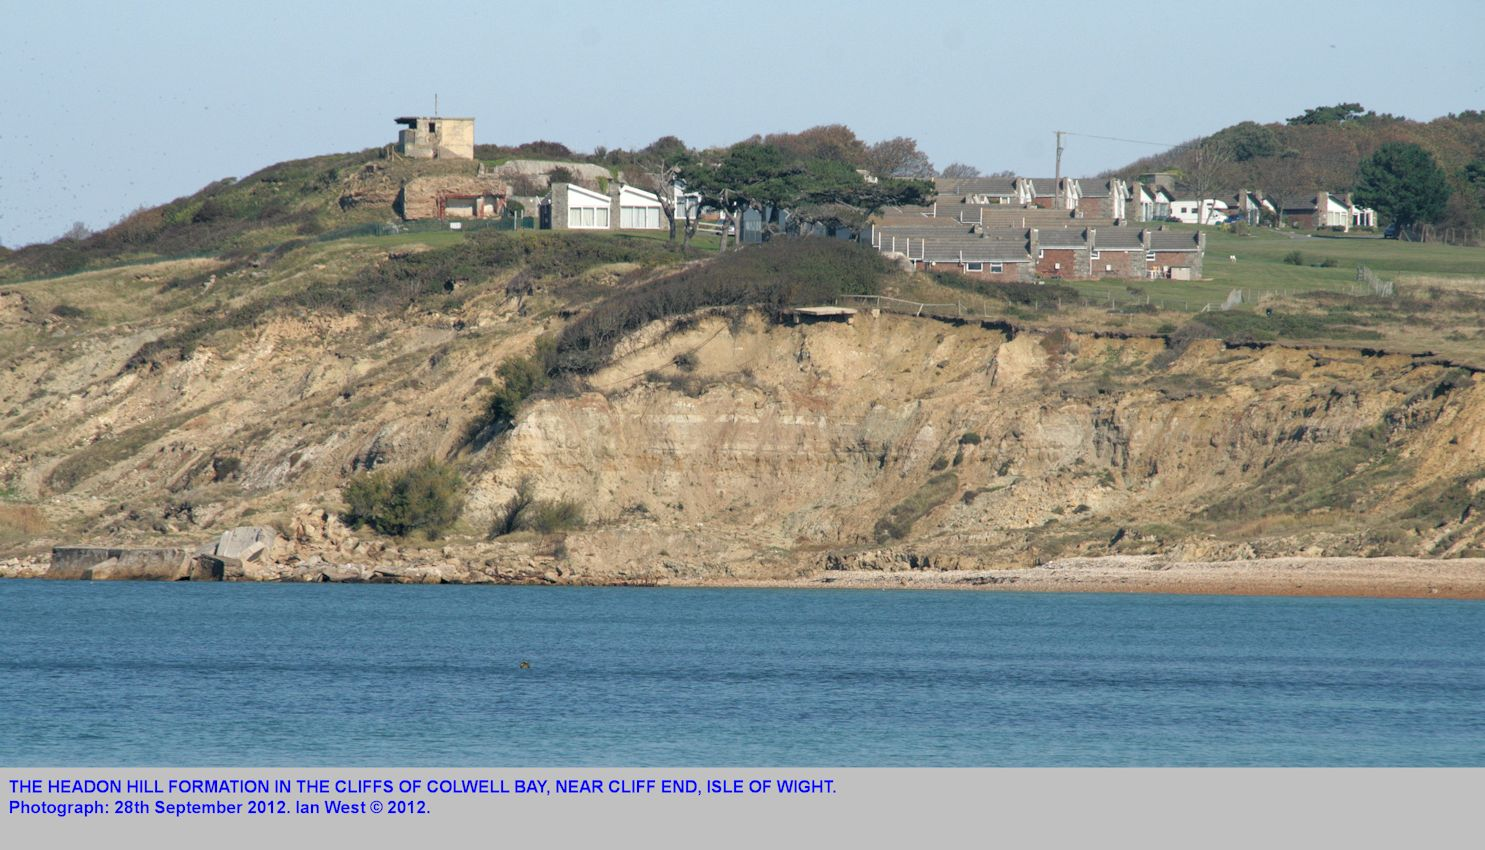 The Headon Hill Formation, exposed in the cliffs near Cliff End, Colwell Bay, Isle of Wight, 28th September 2011